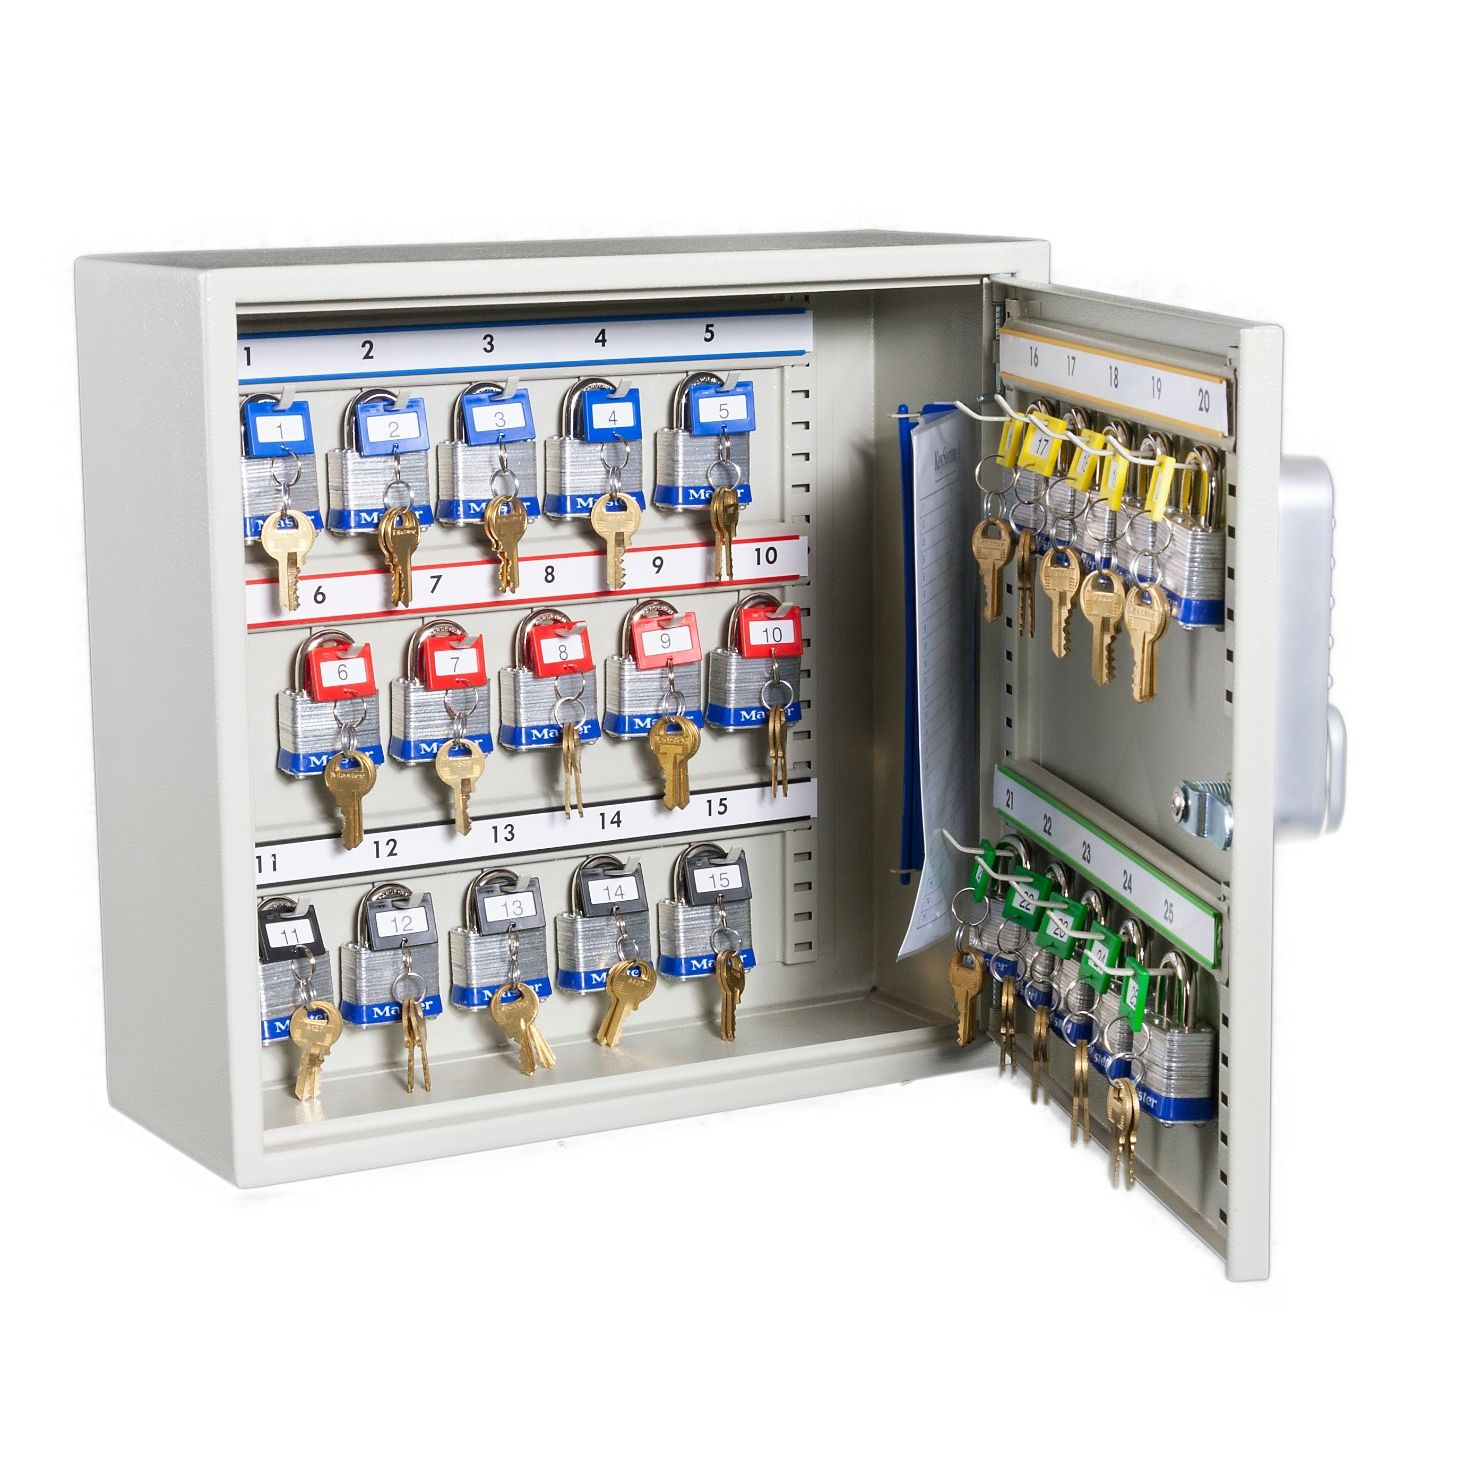 637393087756234088_high_capacity_key_cabinets_with_electronic_cam_lock_25_hook_open.jpg